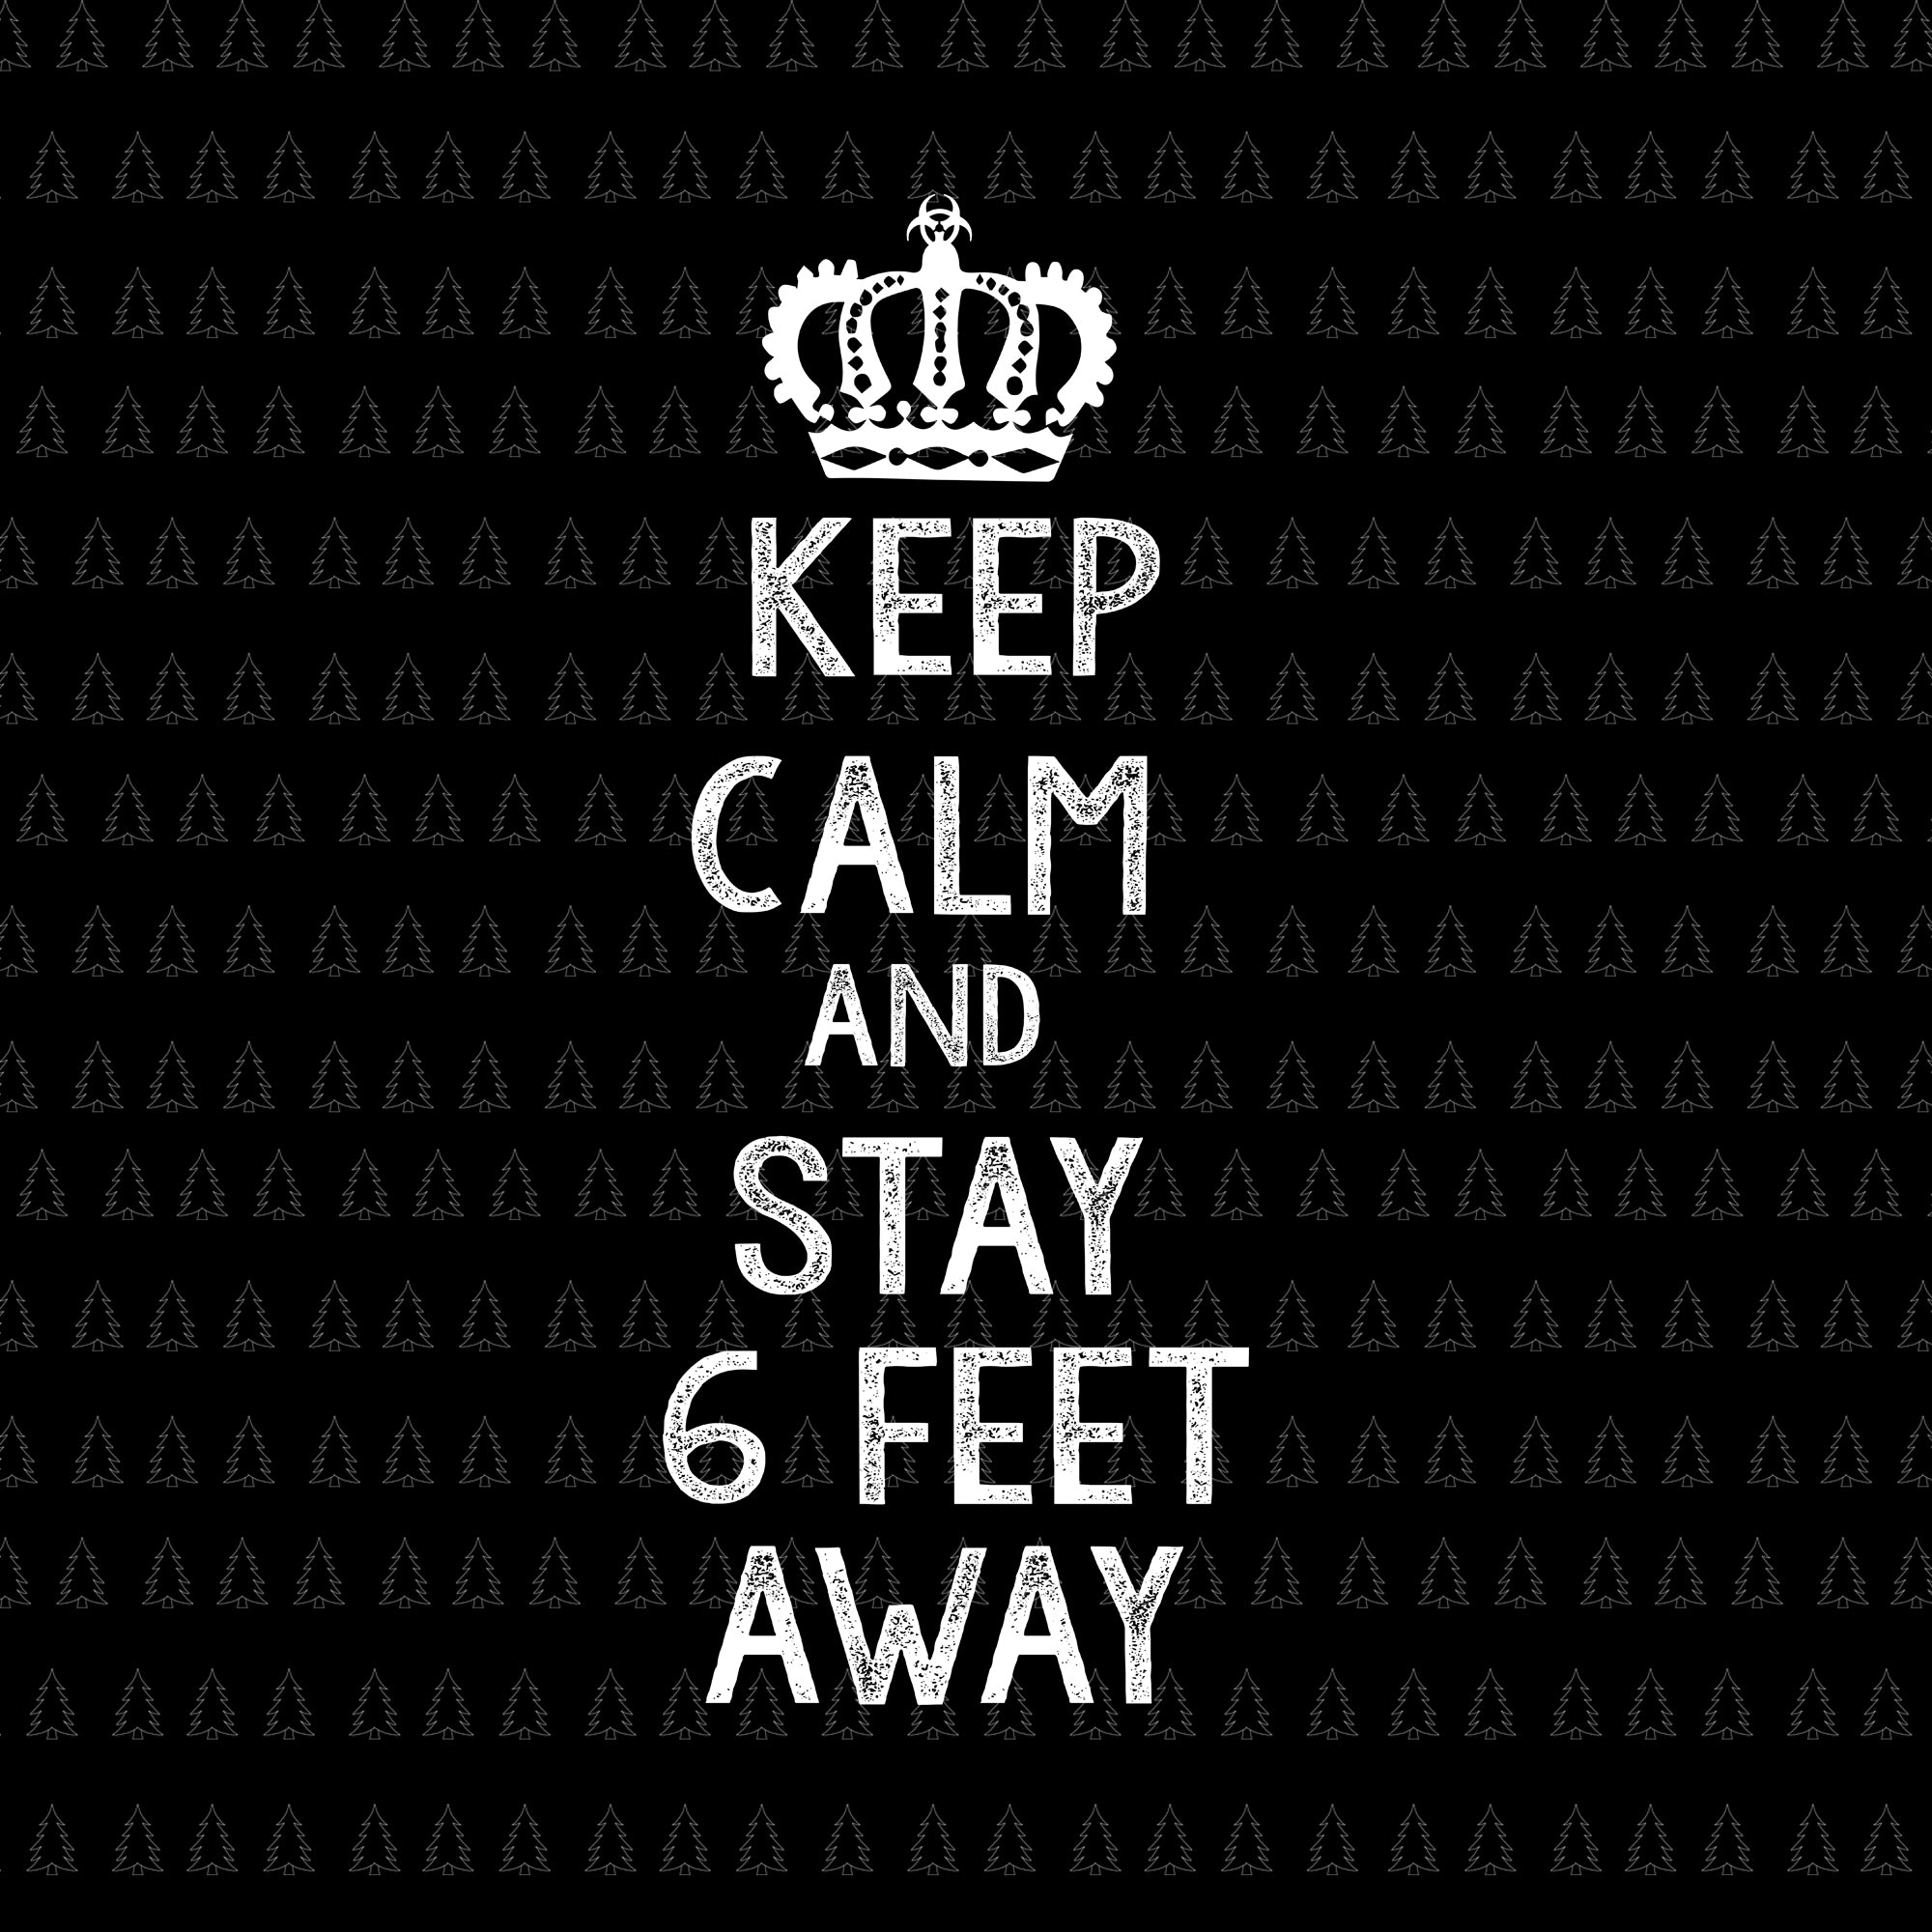 Keep calm and stay 6 feet away svg, keep calm and stay 6 feet away, keep calm and stay 6 feet away png, eps, dxf svg file